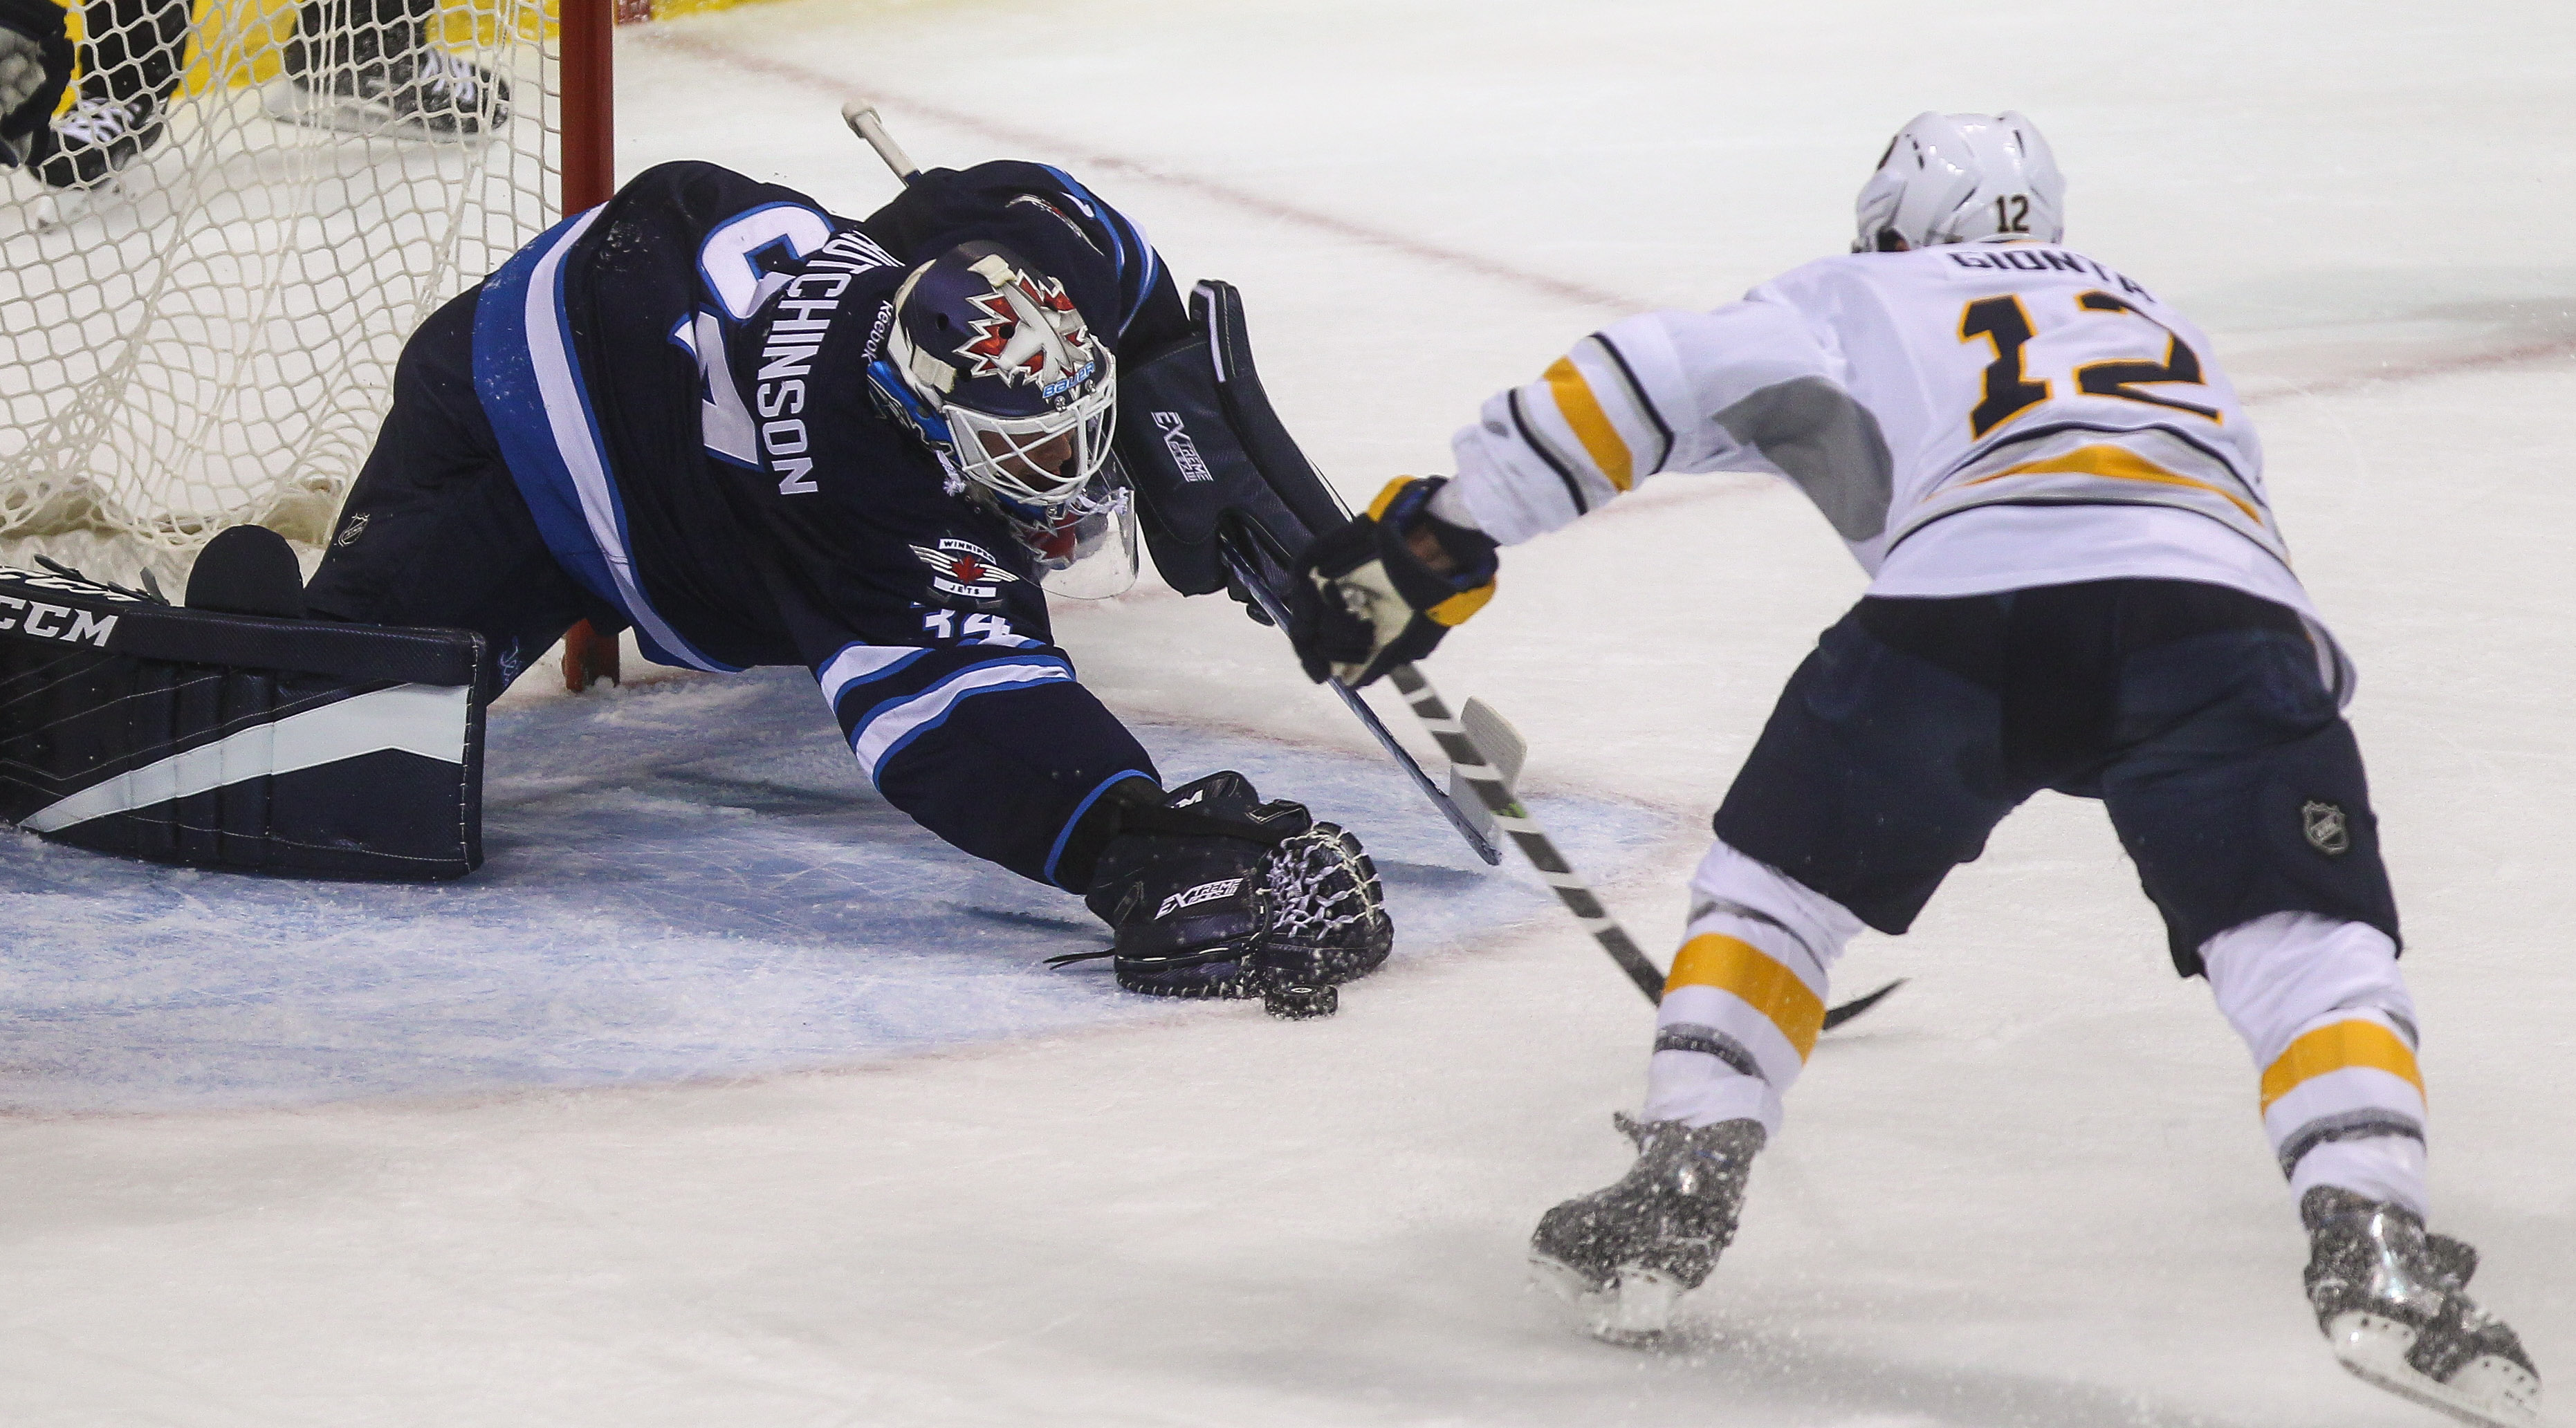 The Sabres' Brian Gionta goes in for the score against Jets goalie Michael Hutchinson. (Mike Deal/Winnipeg Free Press)